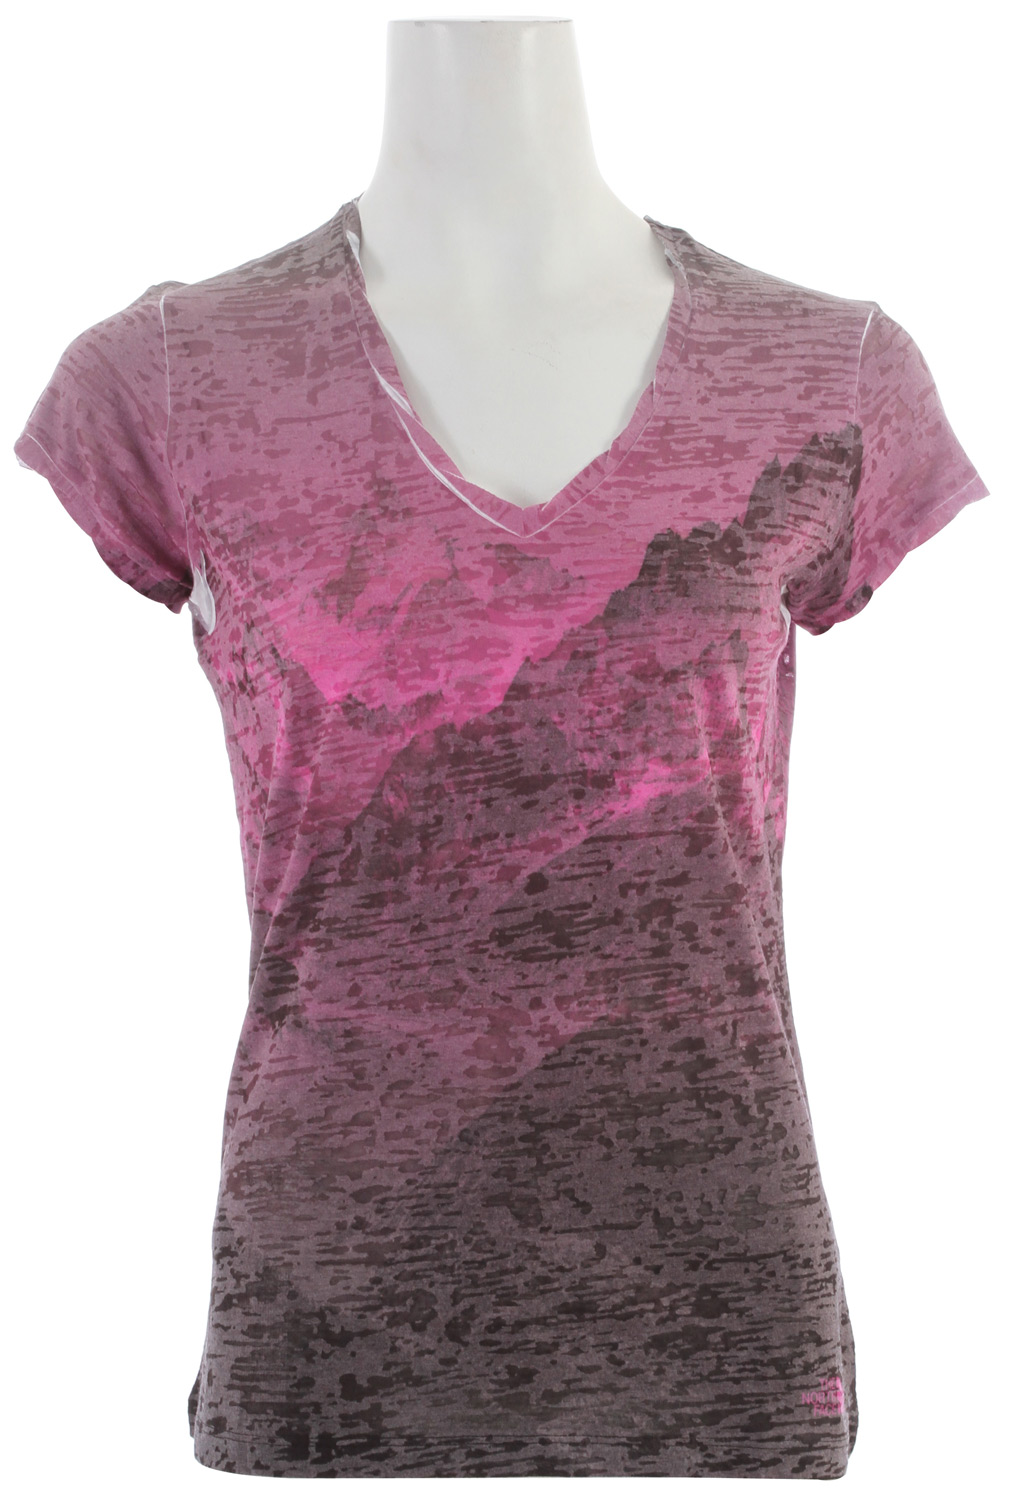 "A great lightweight layering tee with a scooped neck and hem, and an eye-catching burn-out print.Key Features of the The North Face Tadasana Burn-Out Shirt: Regular fit Photo-real sublimationsplash burn-out Twisted sleeve hem and neck trim Center back: 26"" Fabric: 145 g/m2 50% cotton, 50% burn-out jersey - $30.95"